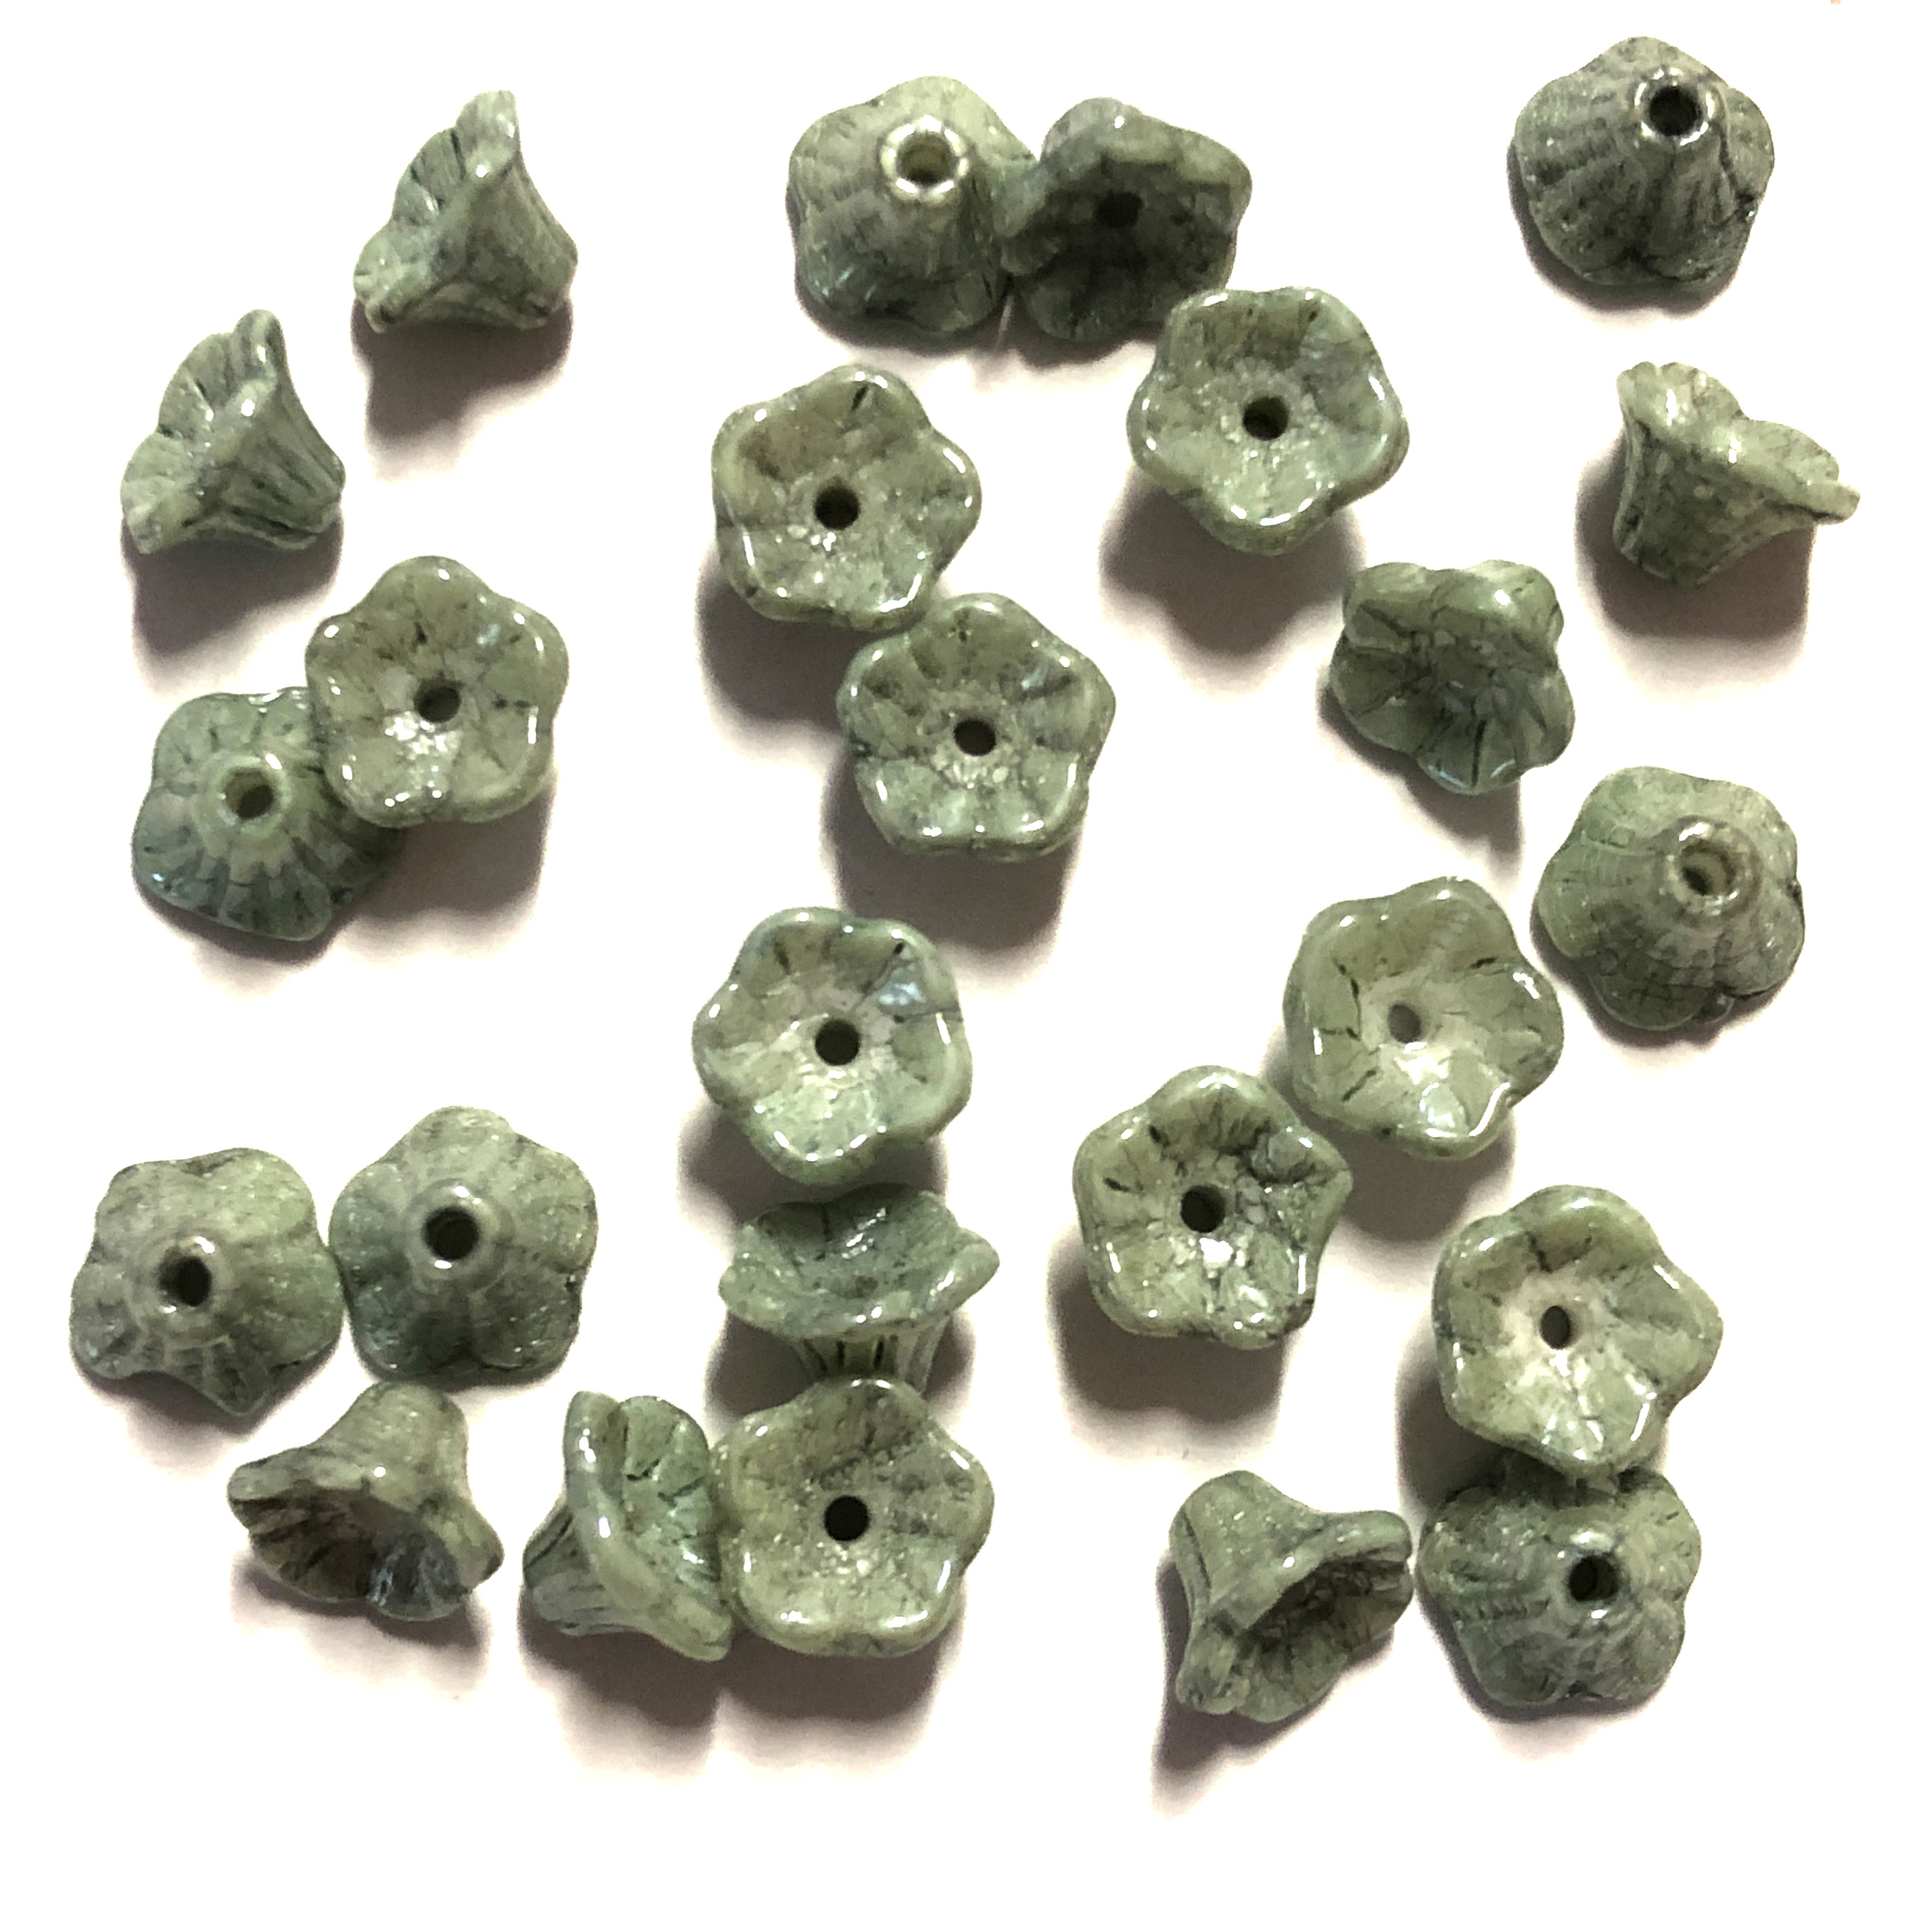 Mini Bell Flower Beads, Czech Glass Beads, 0261, flower cup beads, Chalk White Teal Luster, muted green luster,  bell flowers, 5x7mm, assorted beads, beads, glass beads,  flowers, floral beads, beading supplies, jewelry supplies